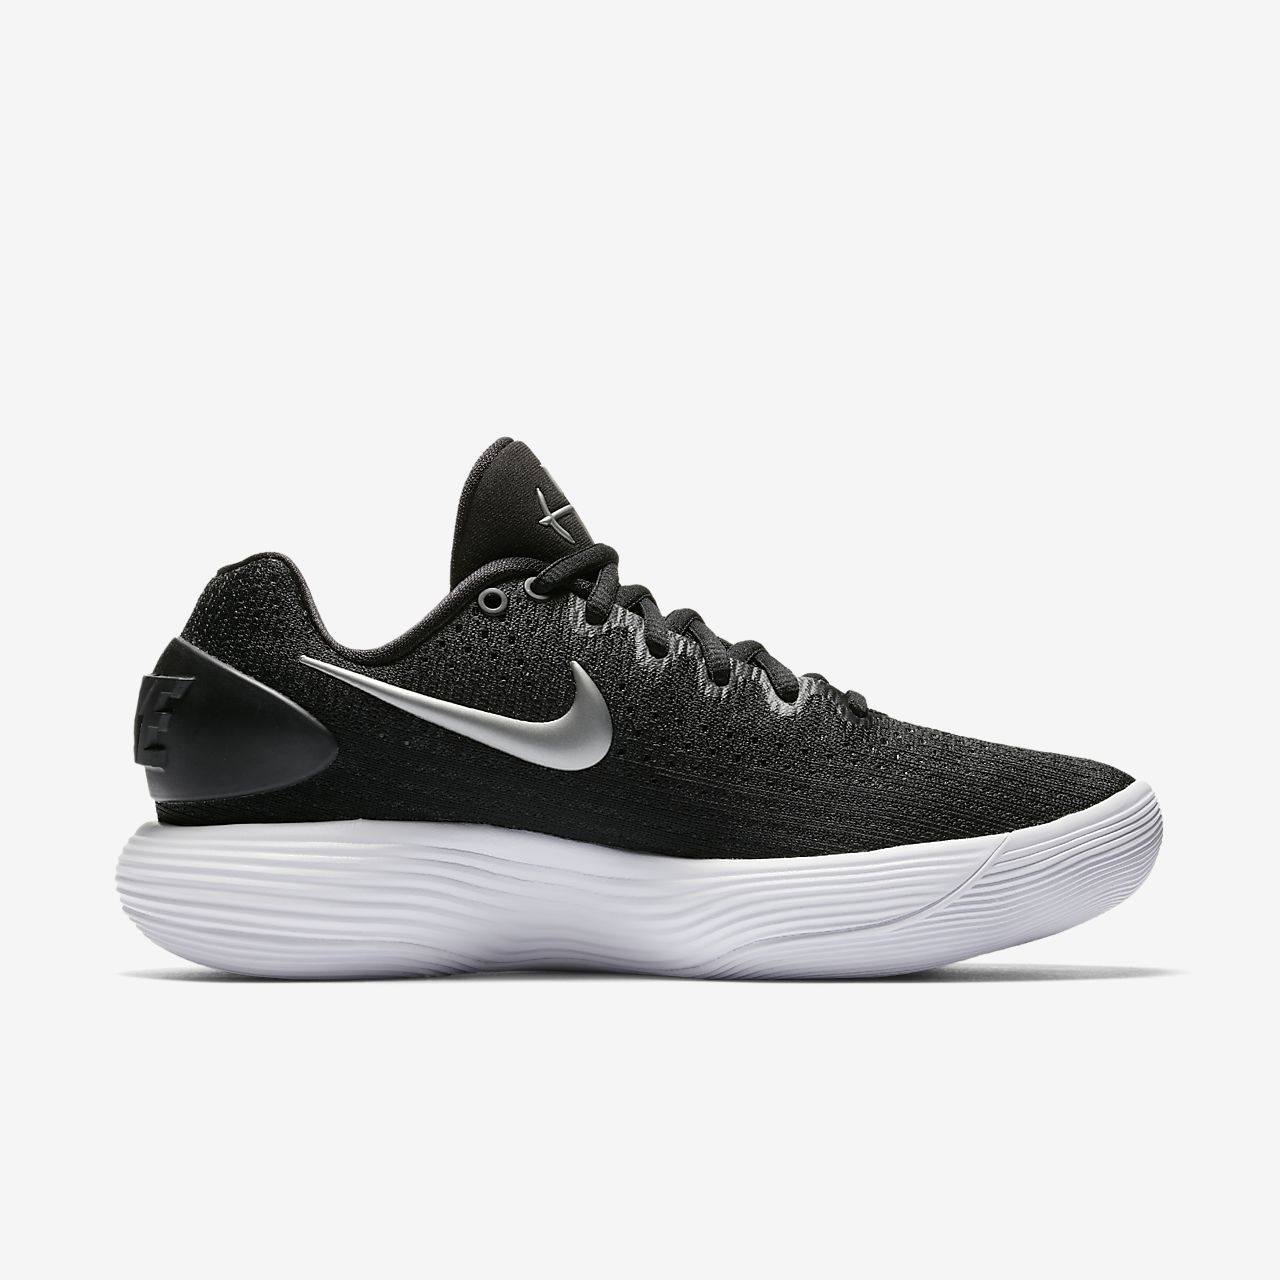 Nike Performance HYPERDUNK 2017 LOW - Chaussures de basket gris svk69Xj0bI